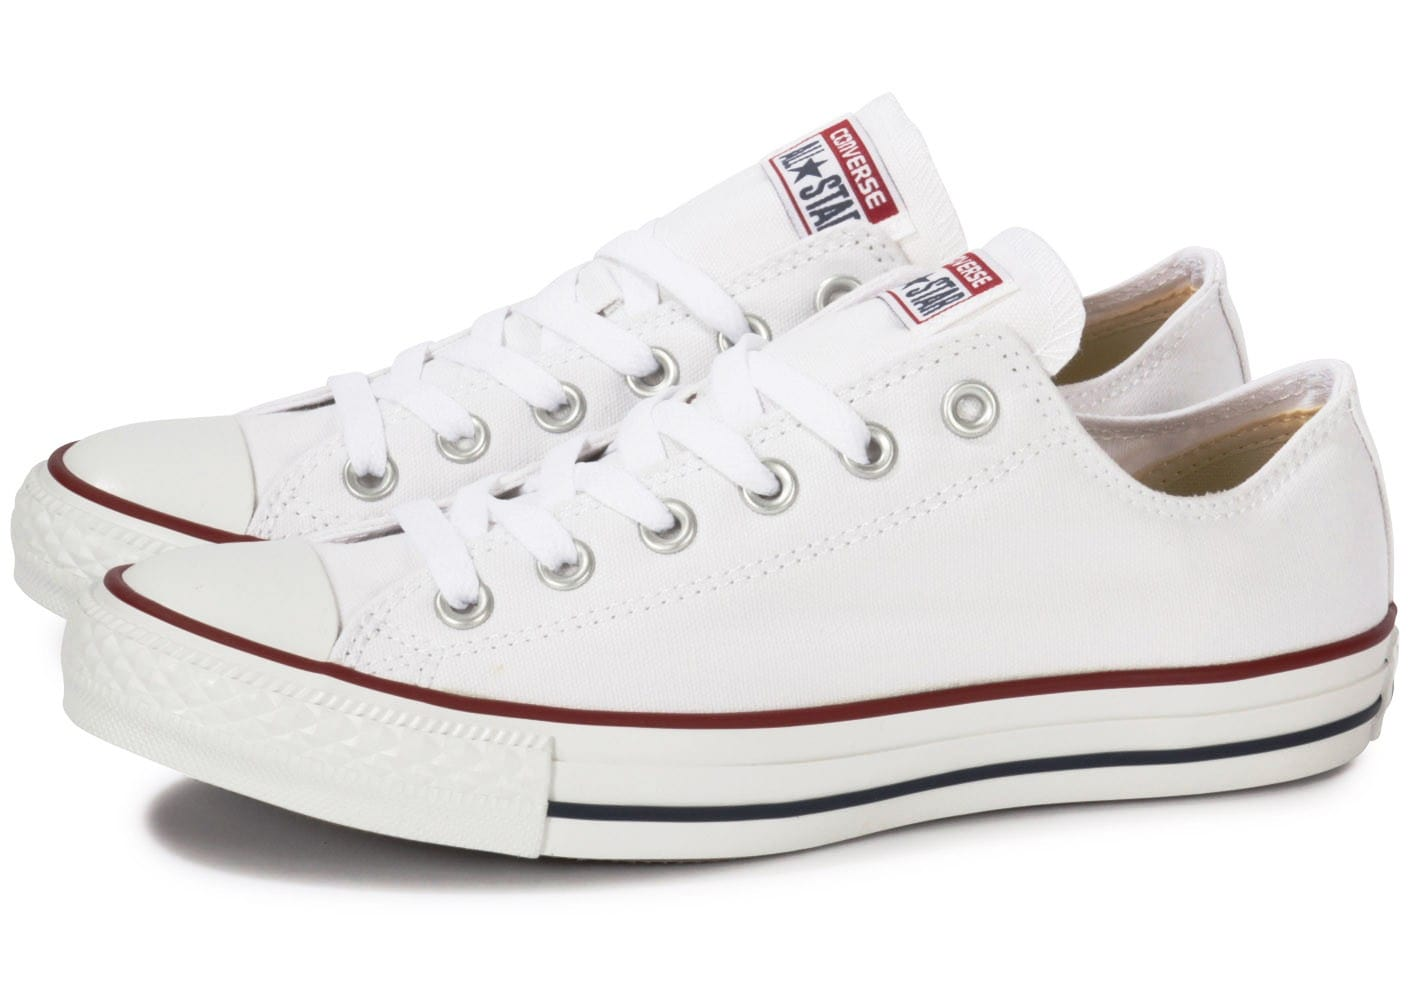 Converse Chuck Taylor All Star low blanche - Chaussures ...